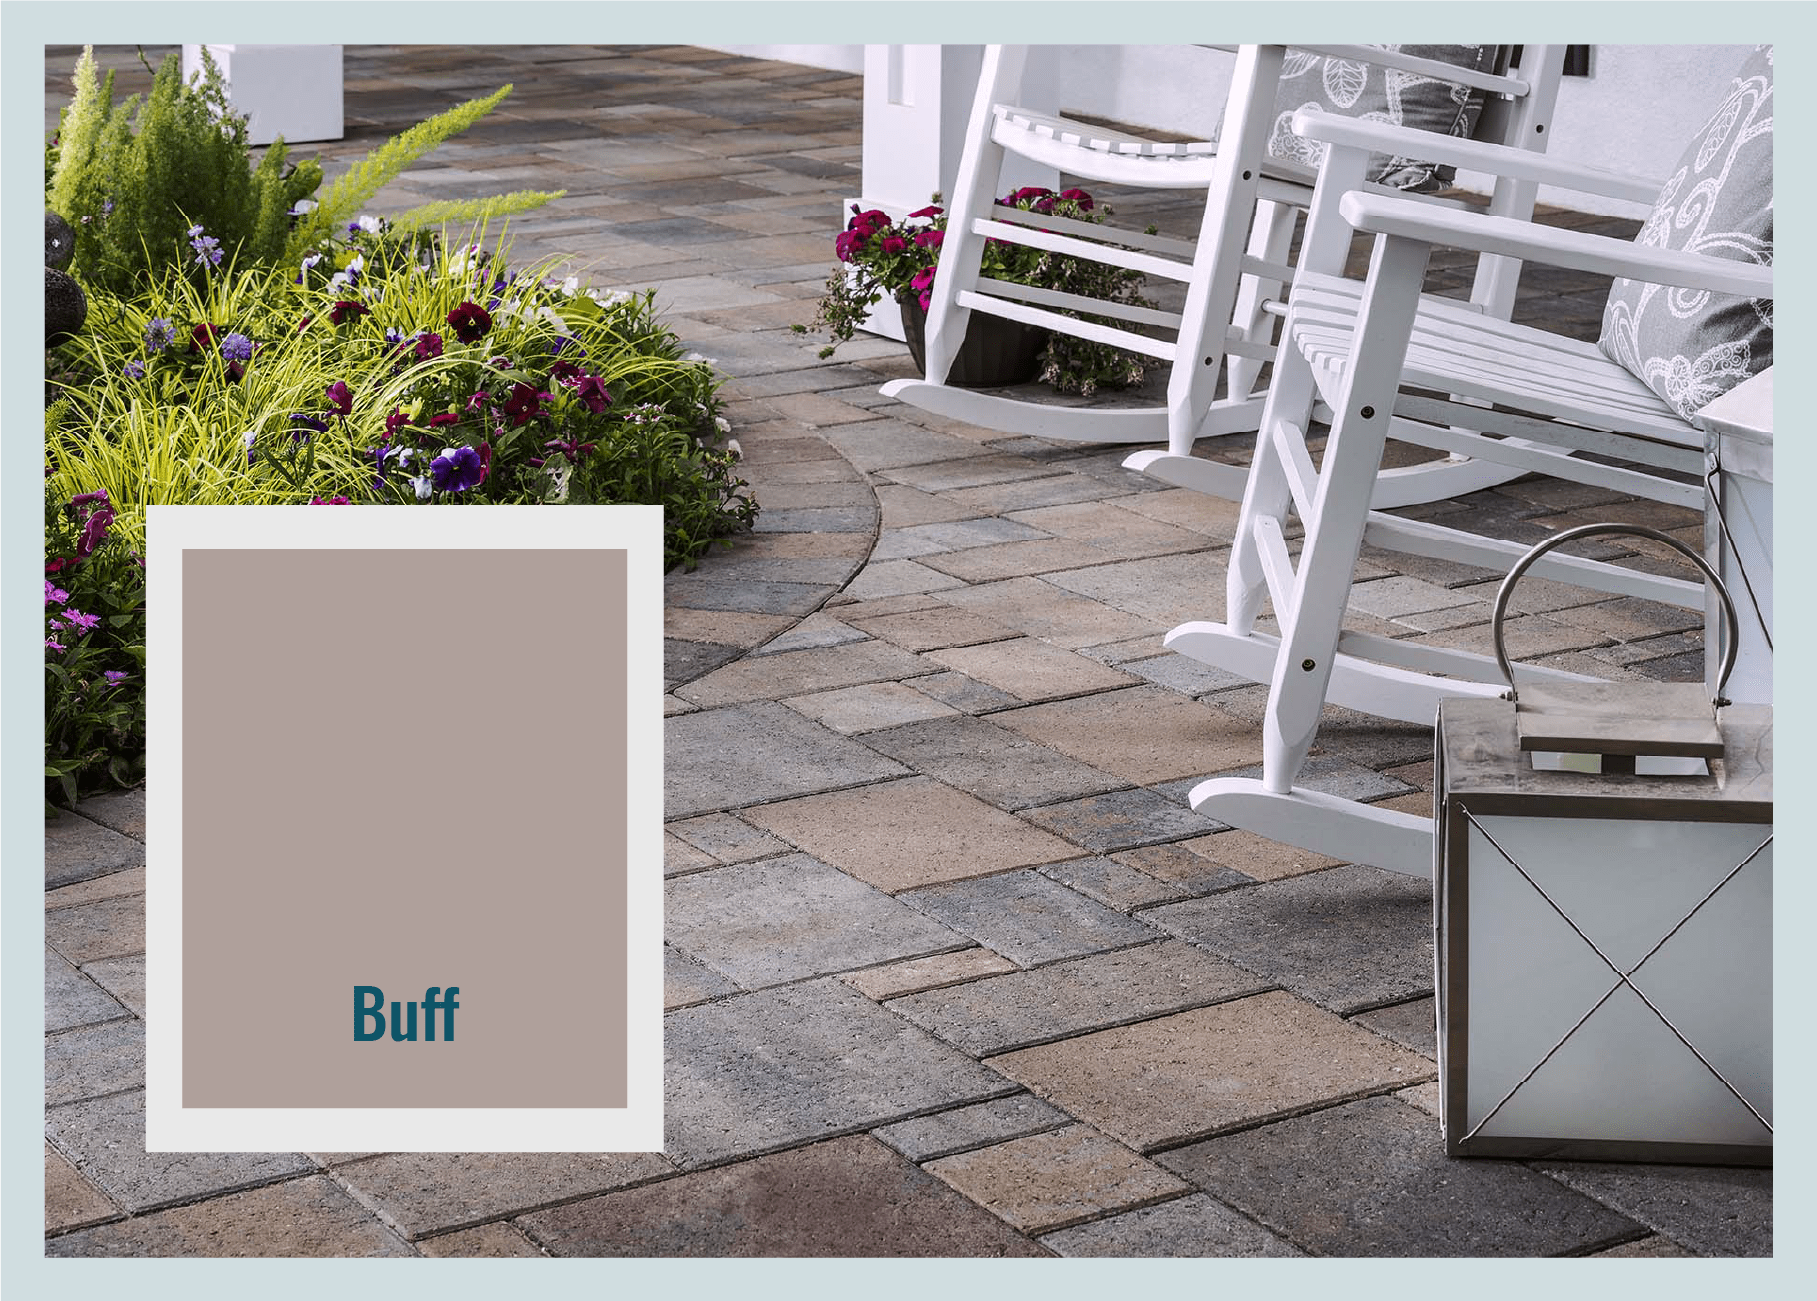 Buff pavers